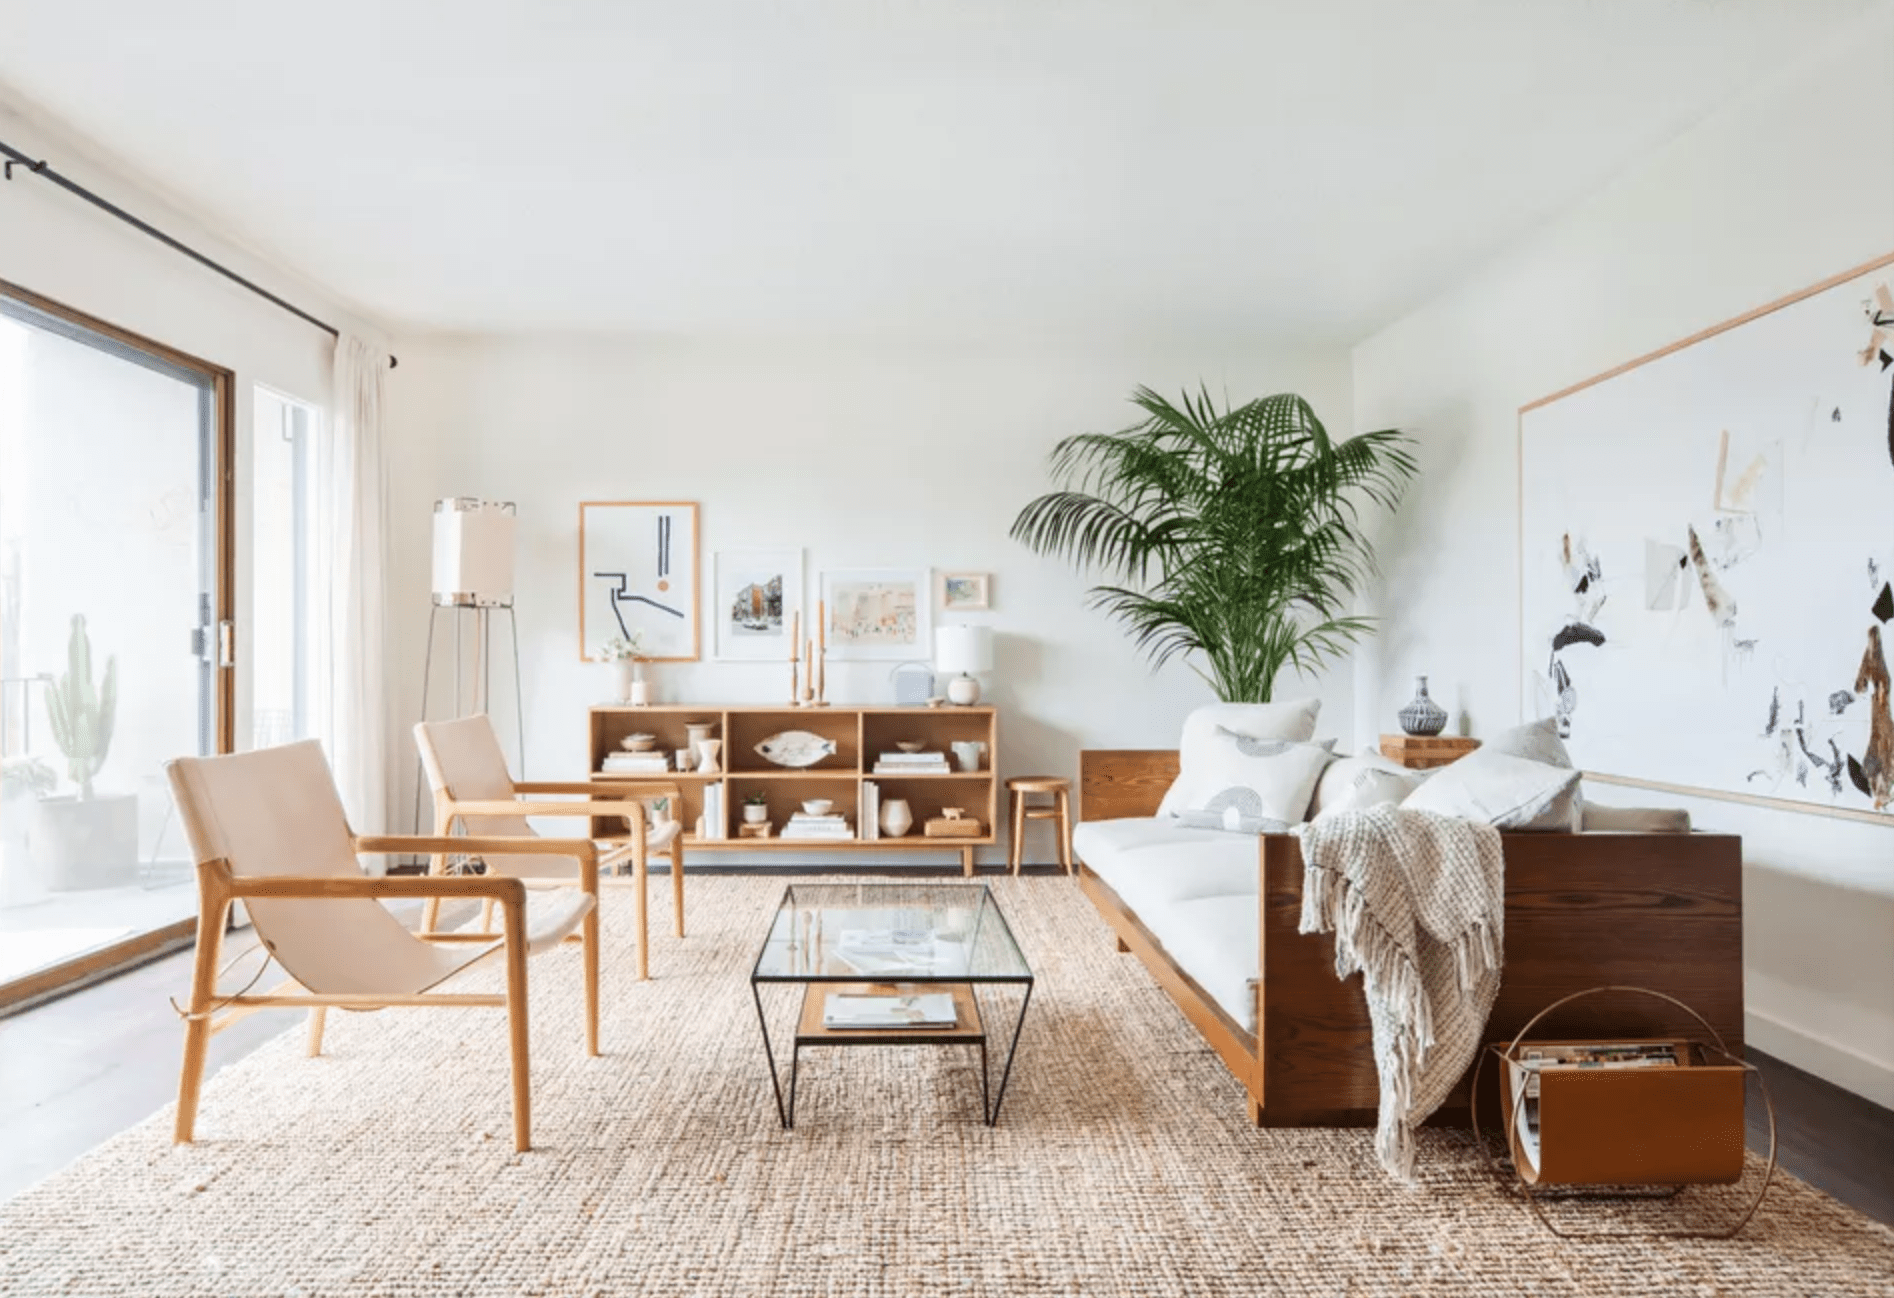 Woven décor elements in a spacious living room